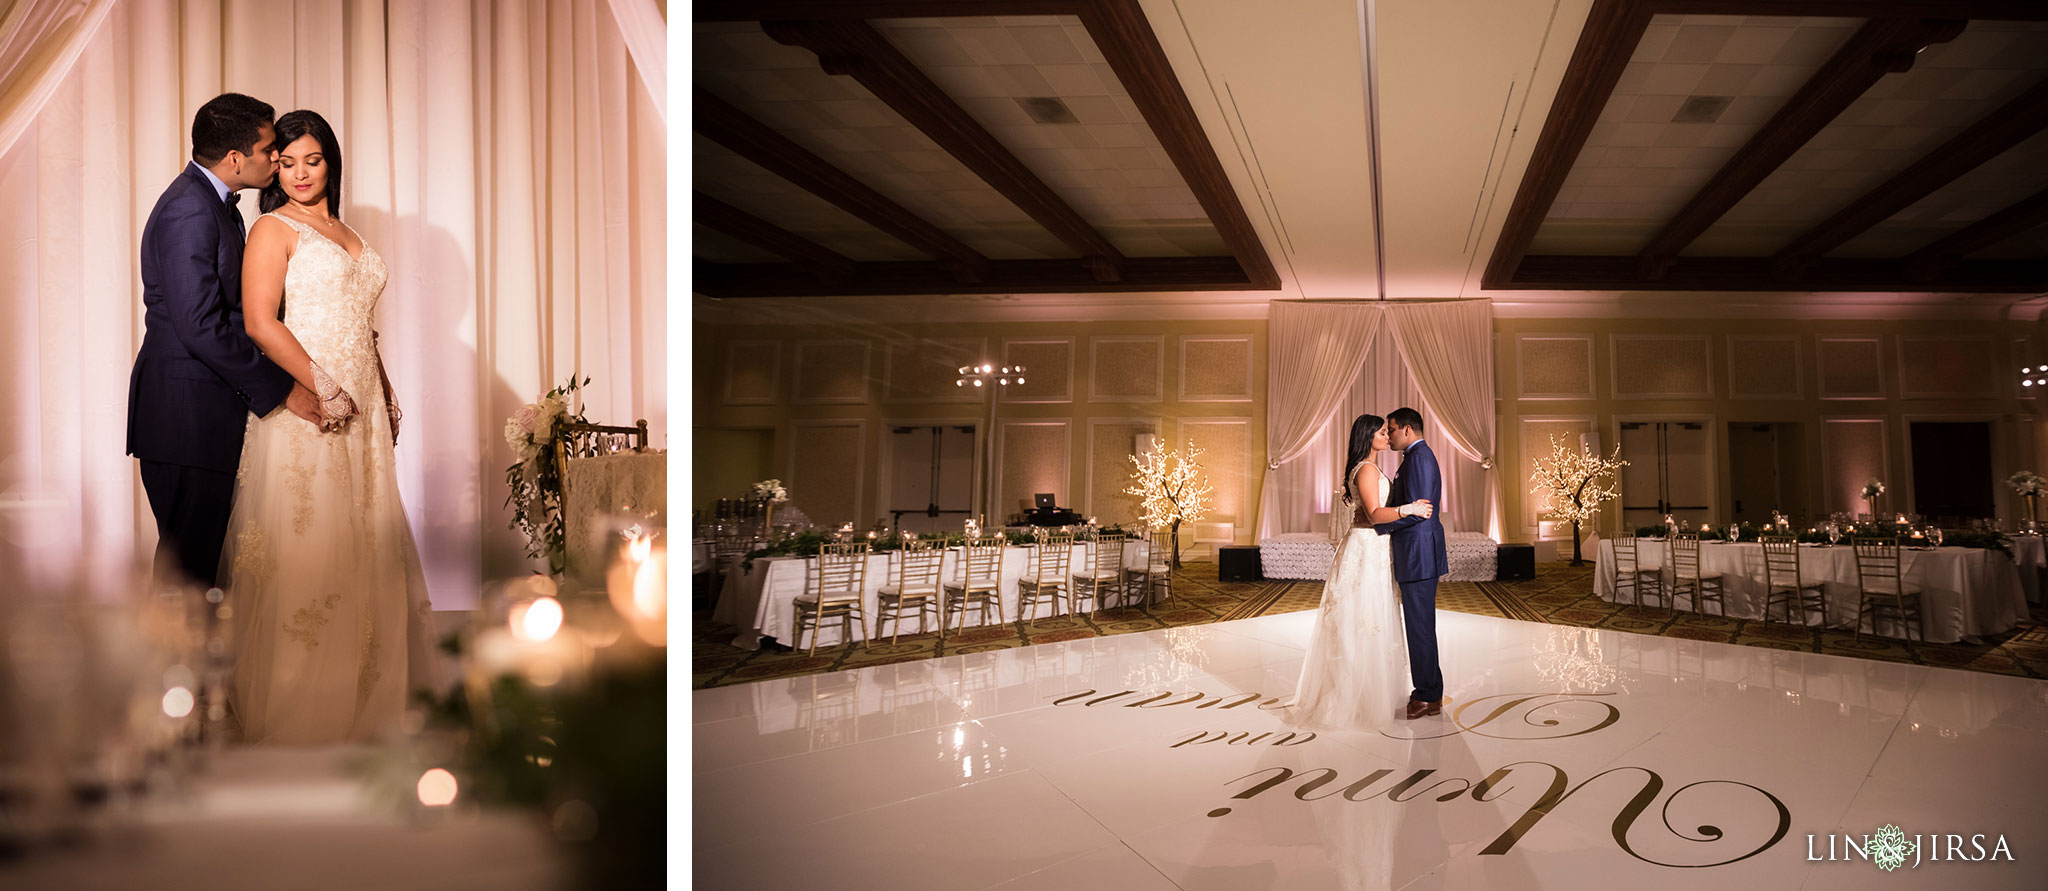 20 hyatt regency huntington beach wedding reception photography